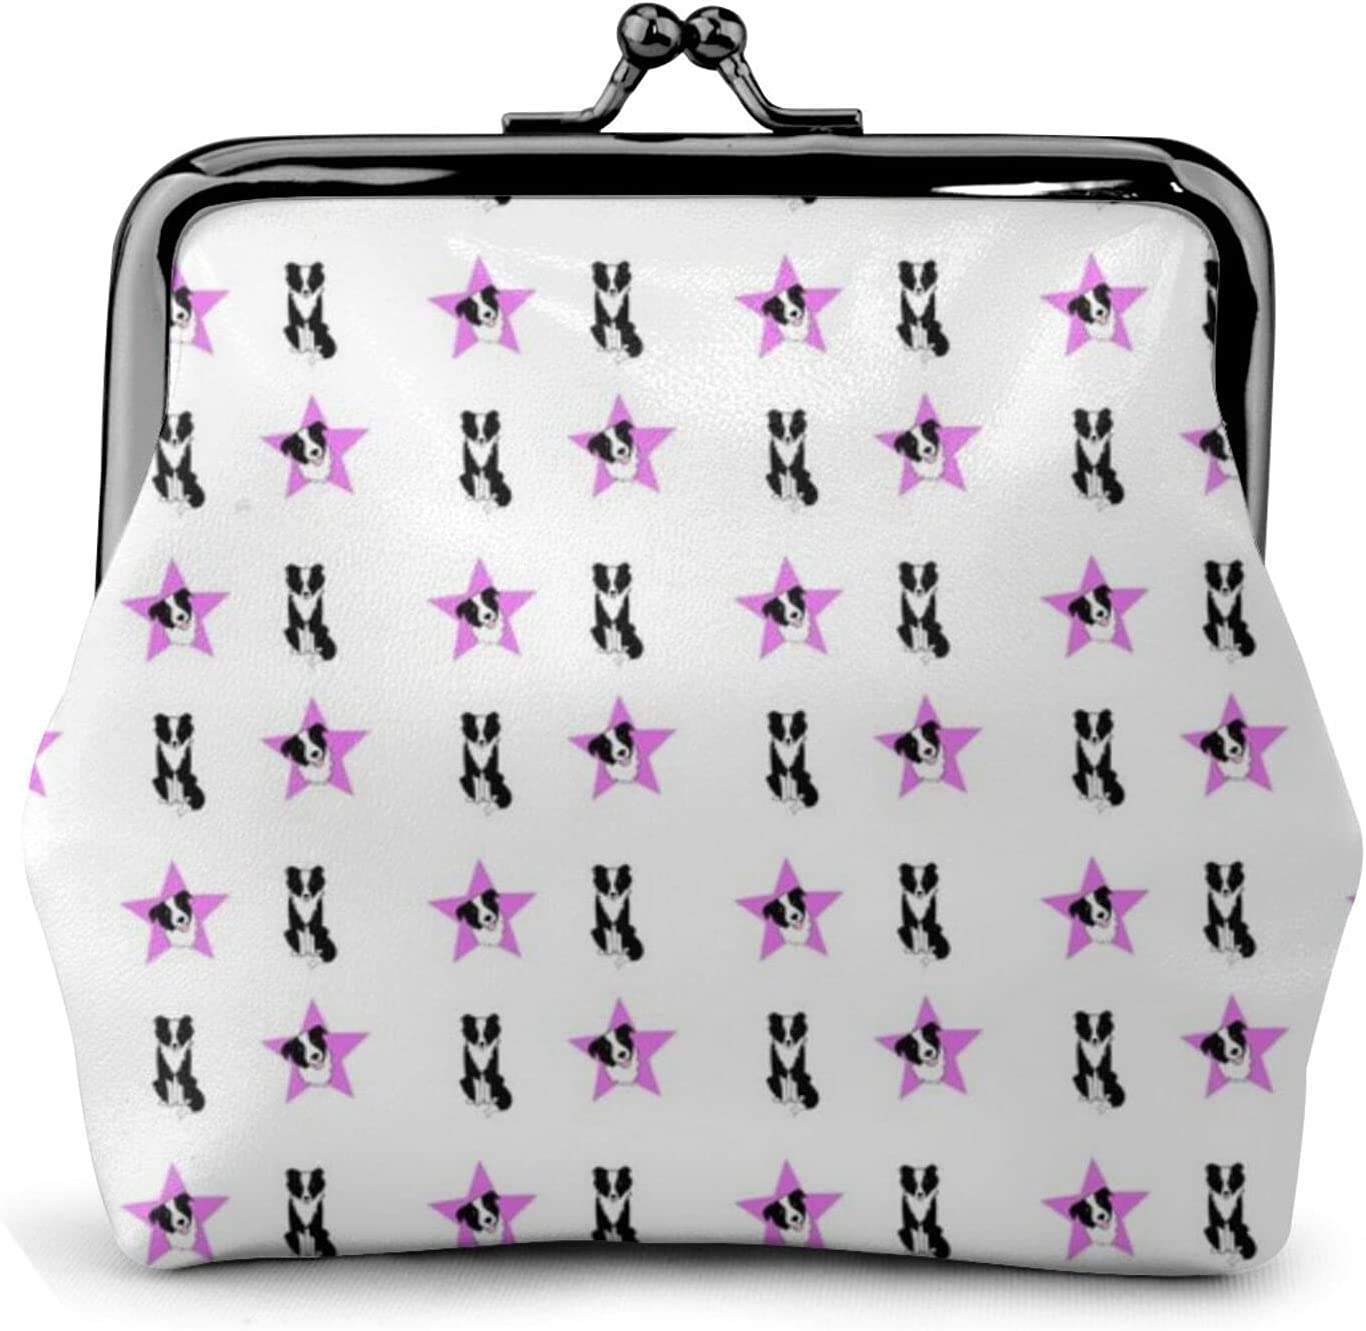 Border Collies And 861 Women'S Wallet Buckle Coin Purses Pouch Kiss-lock Change Travel Makeup Wallets, Black, One Size